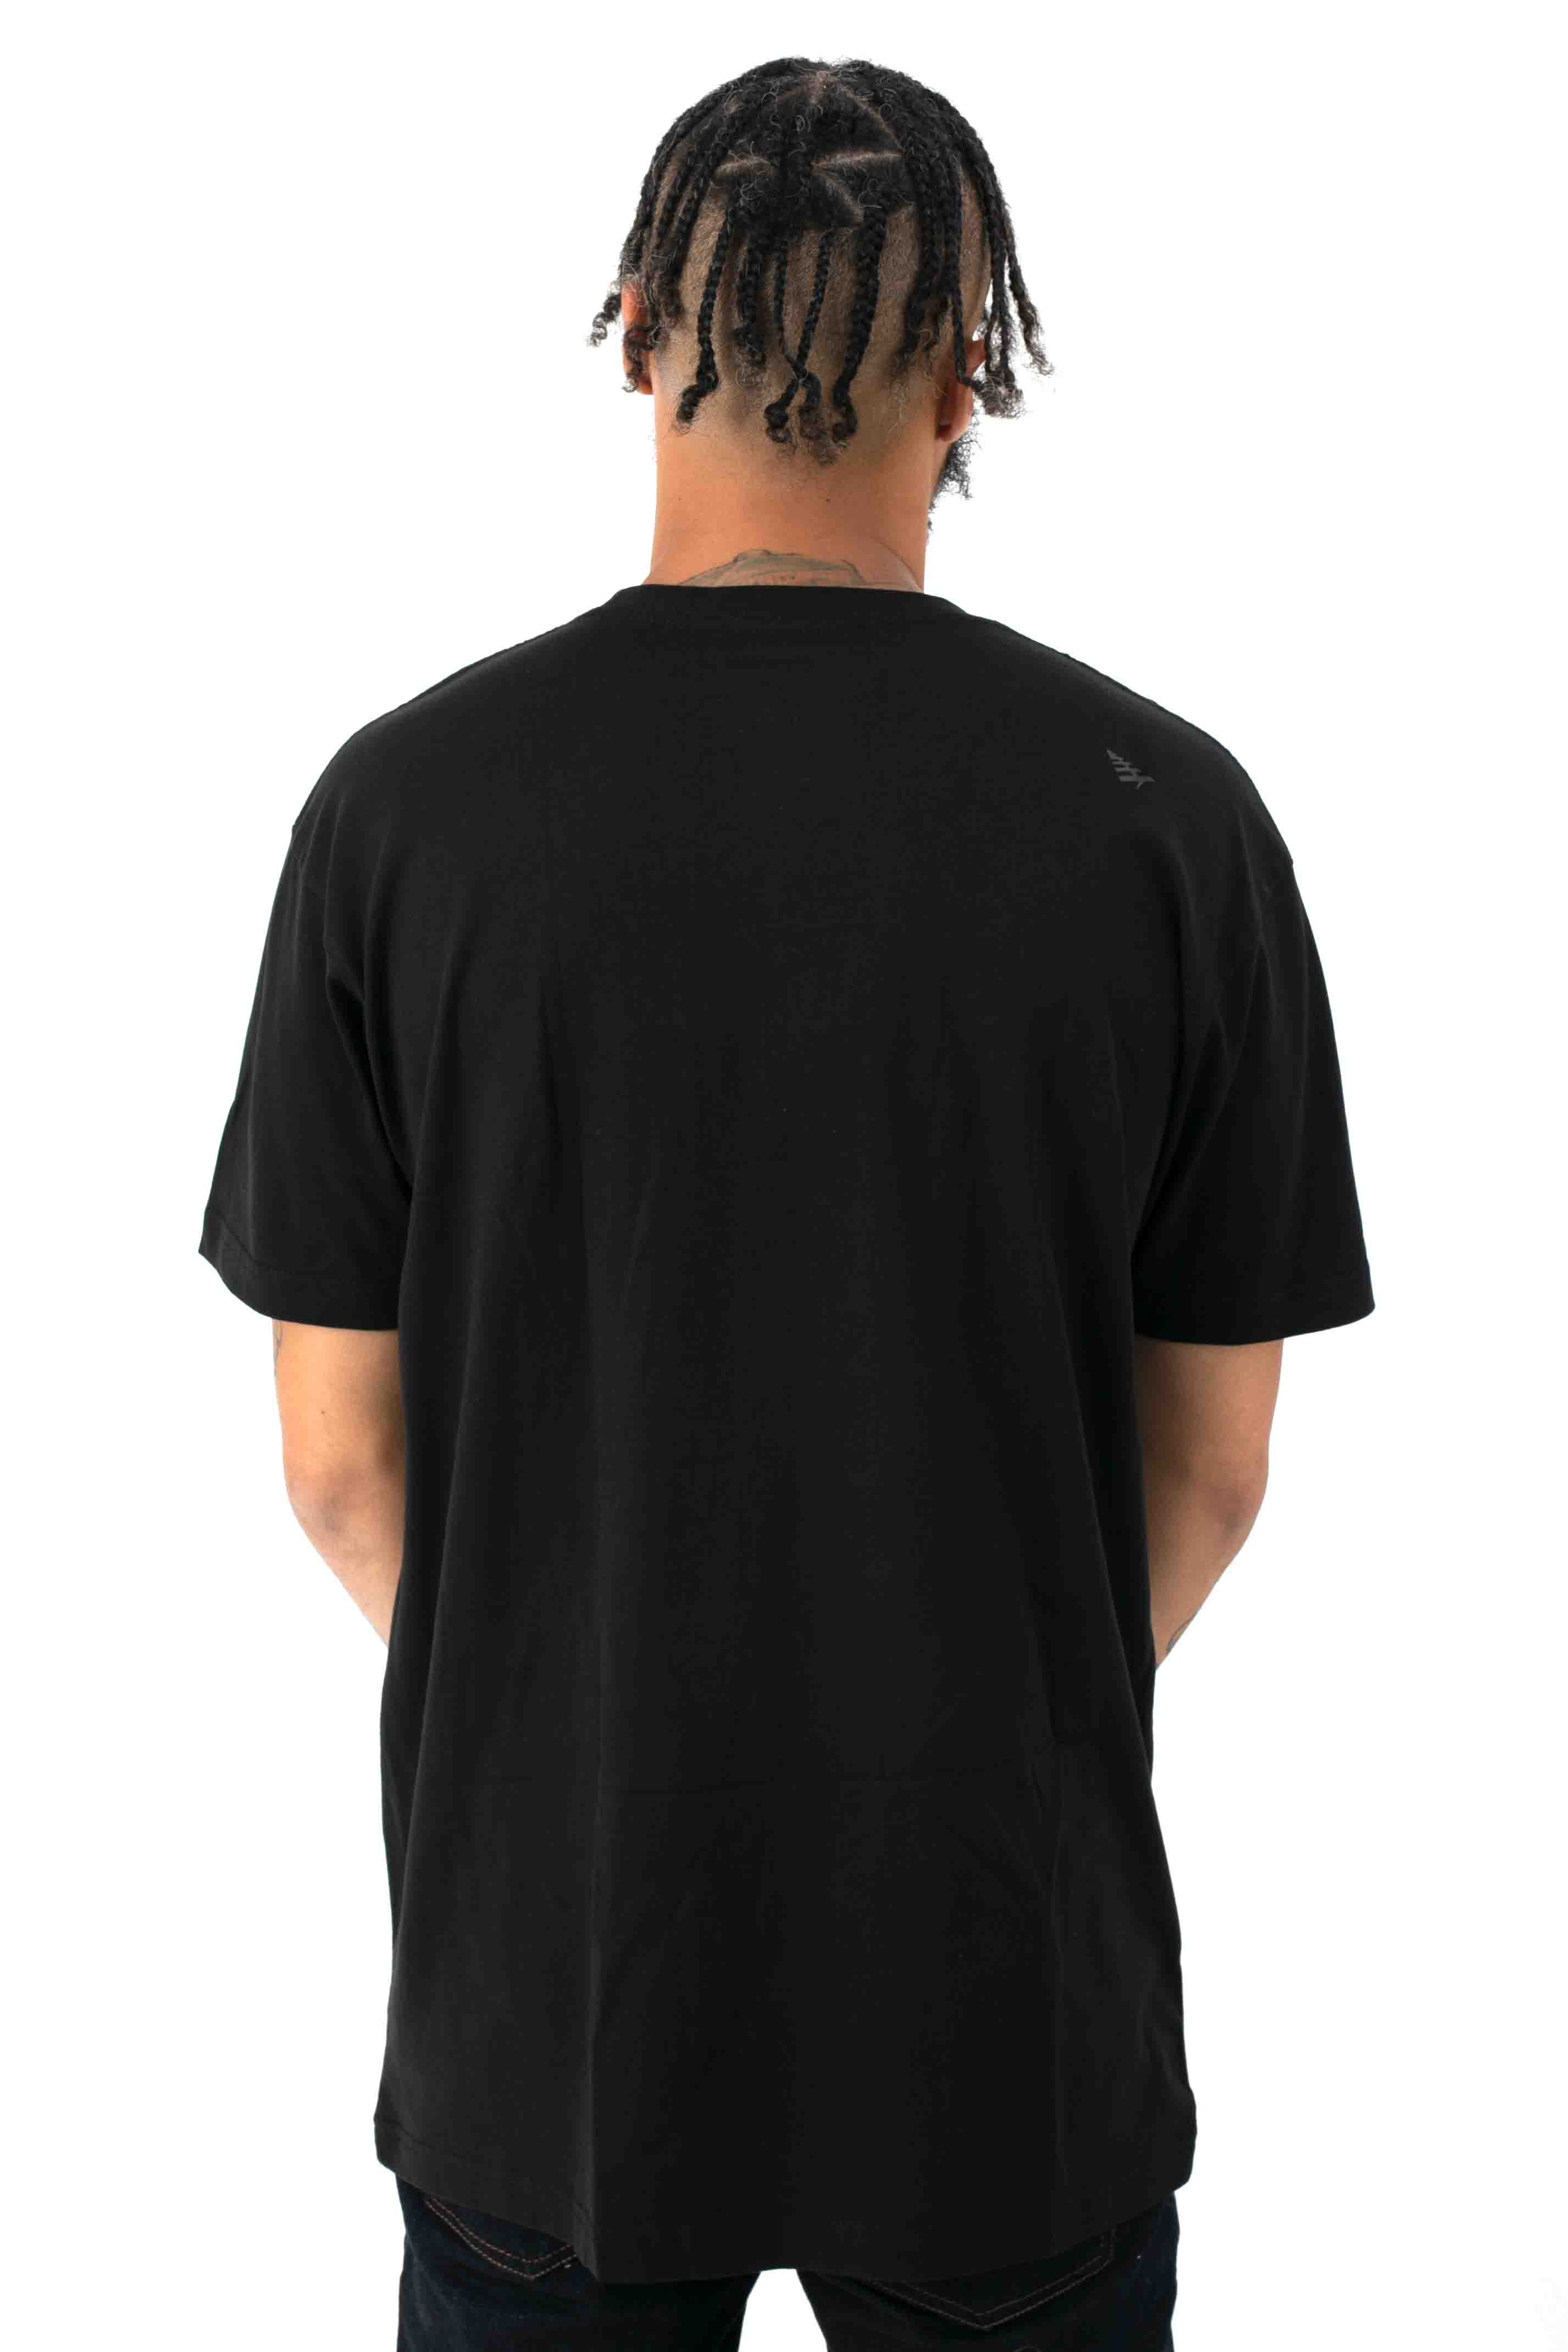 Missed Story T-Shirt - Black 3